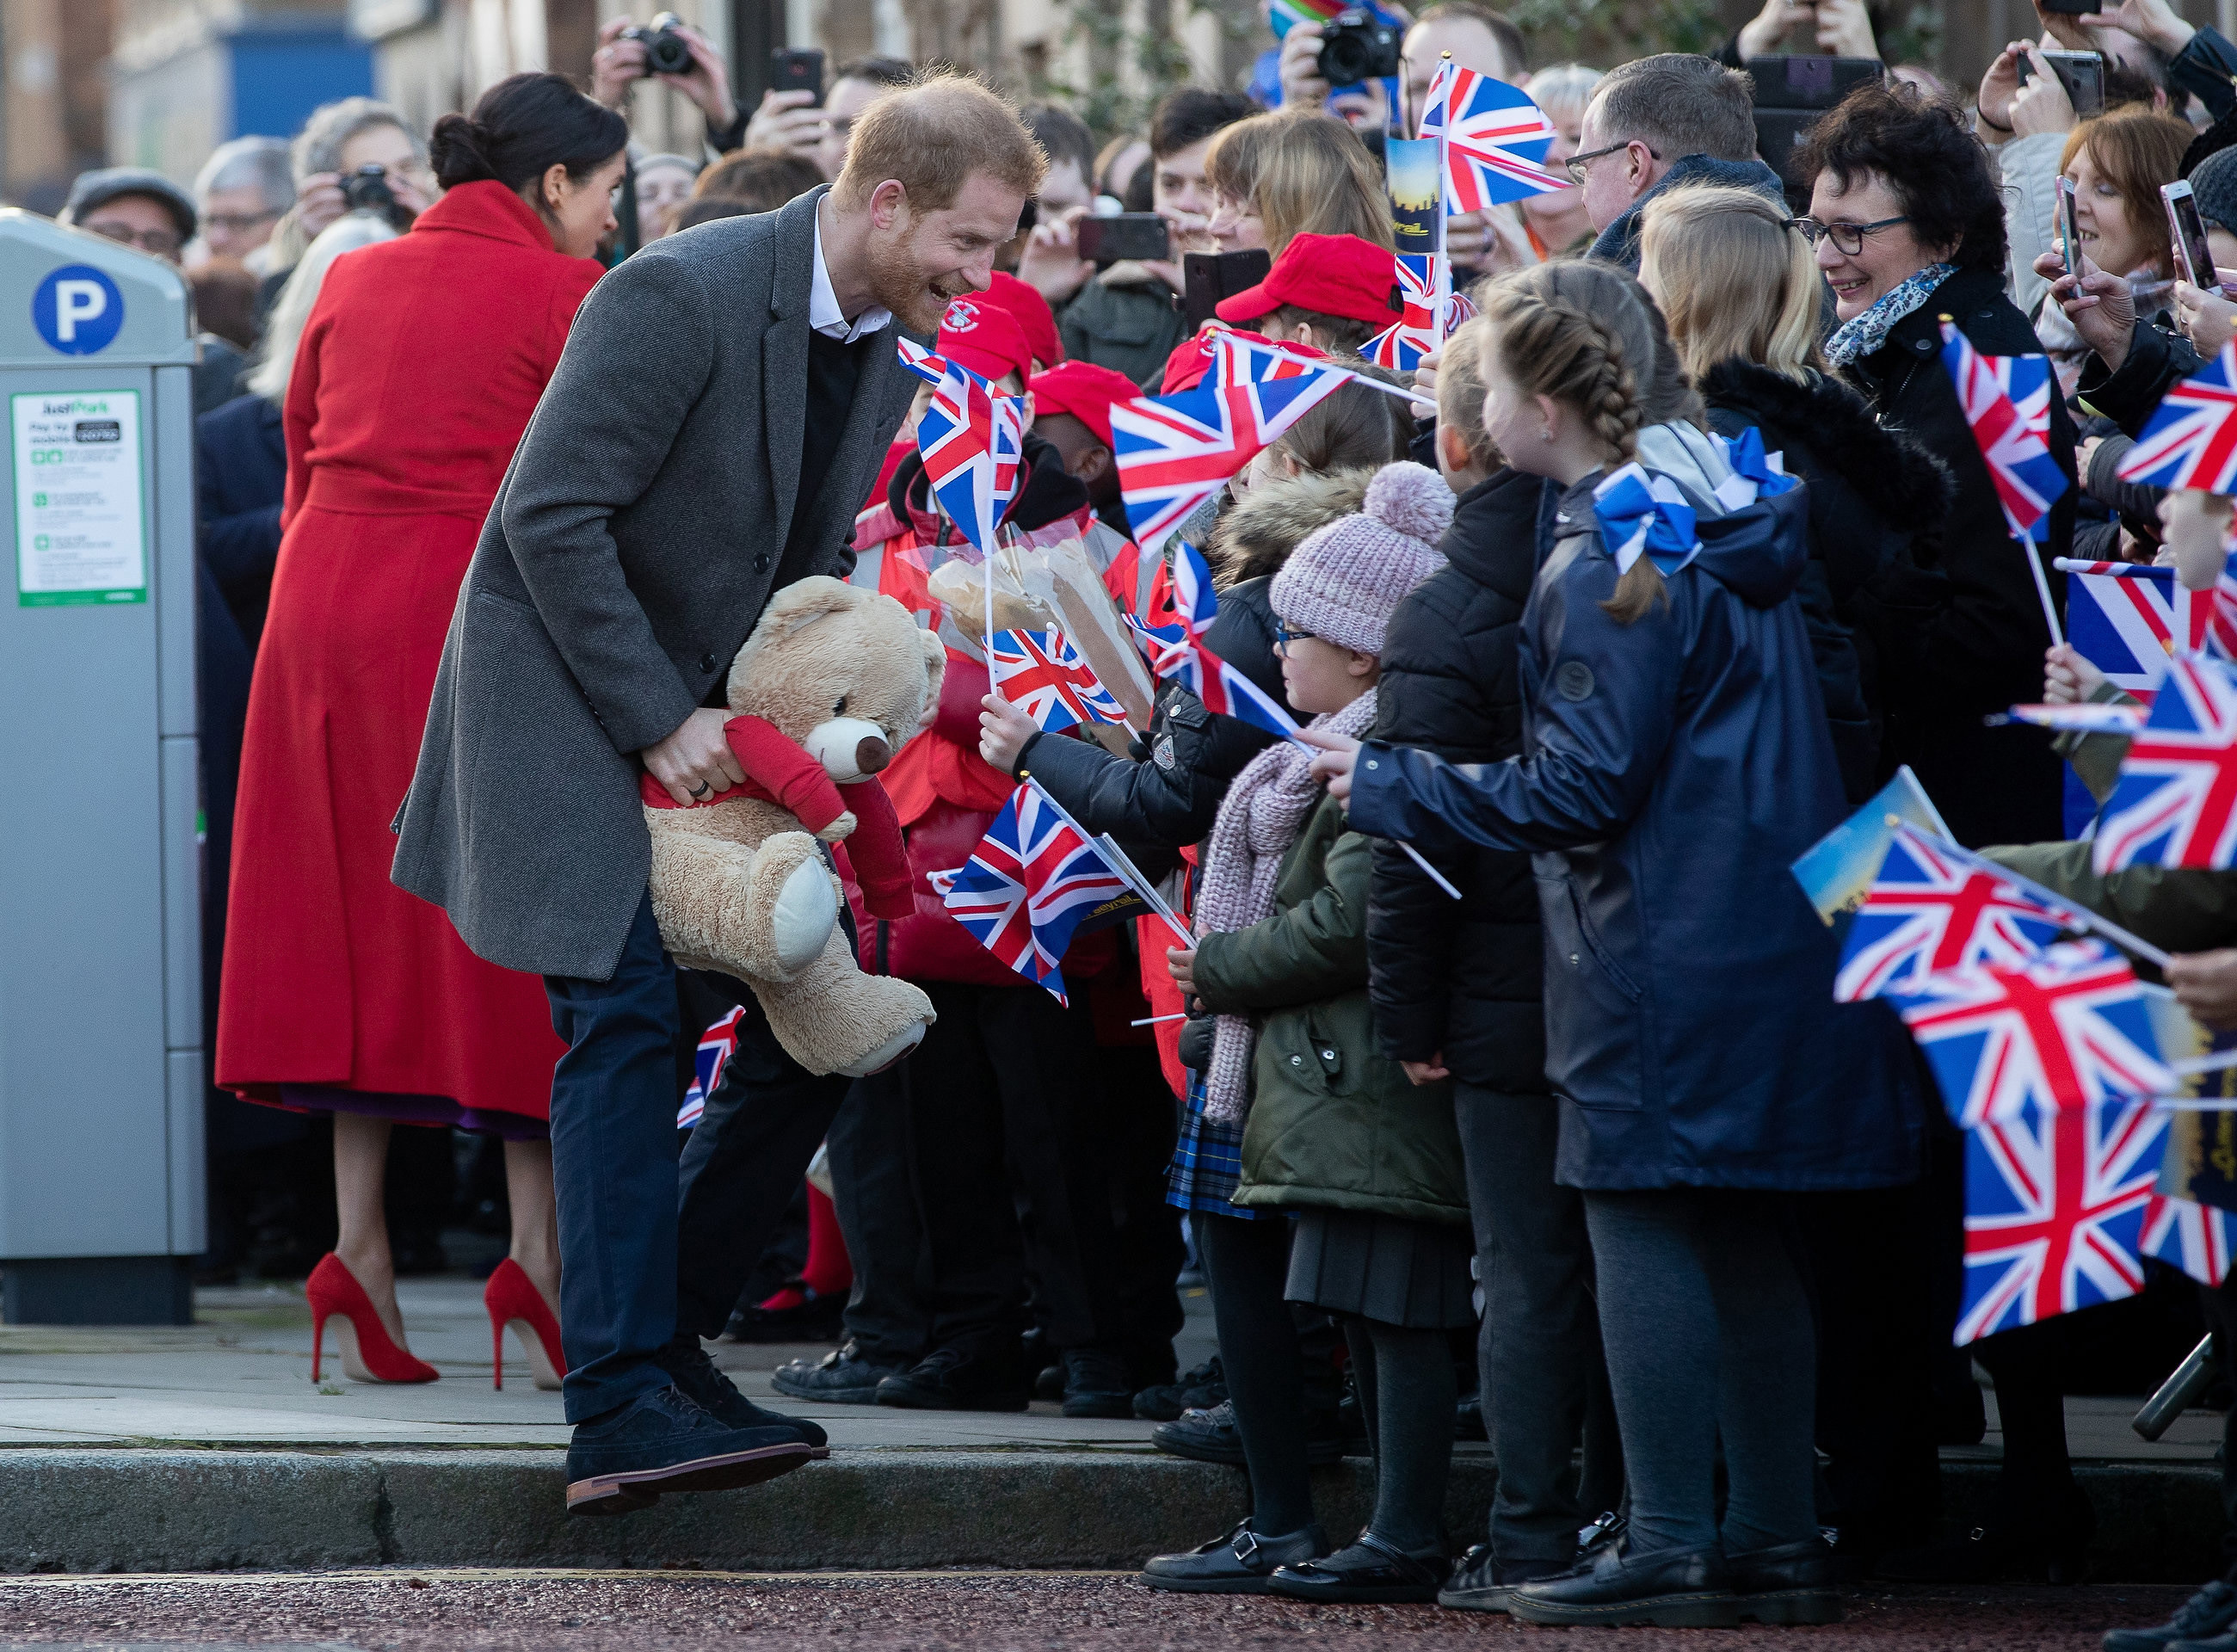 Prince Harry, Duke of Sussex and Meghan, Duchess of Sussex greet well-wishers on Hamilton Square during an official visit to Birkenhead on January 14, 2019 in Birkenhead, United Kingdom